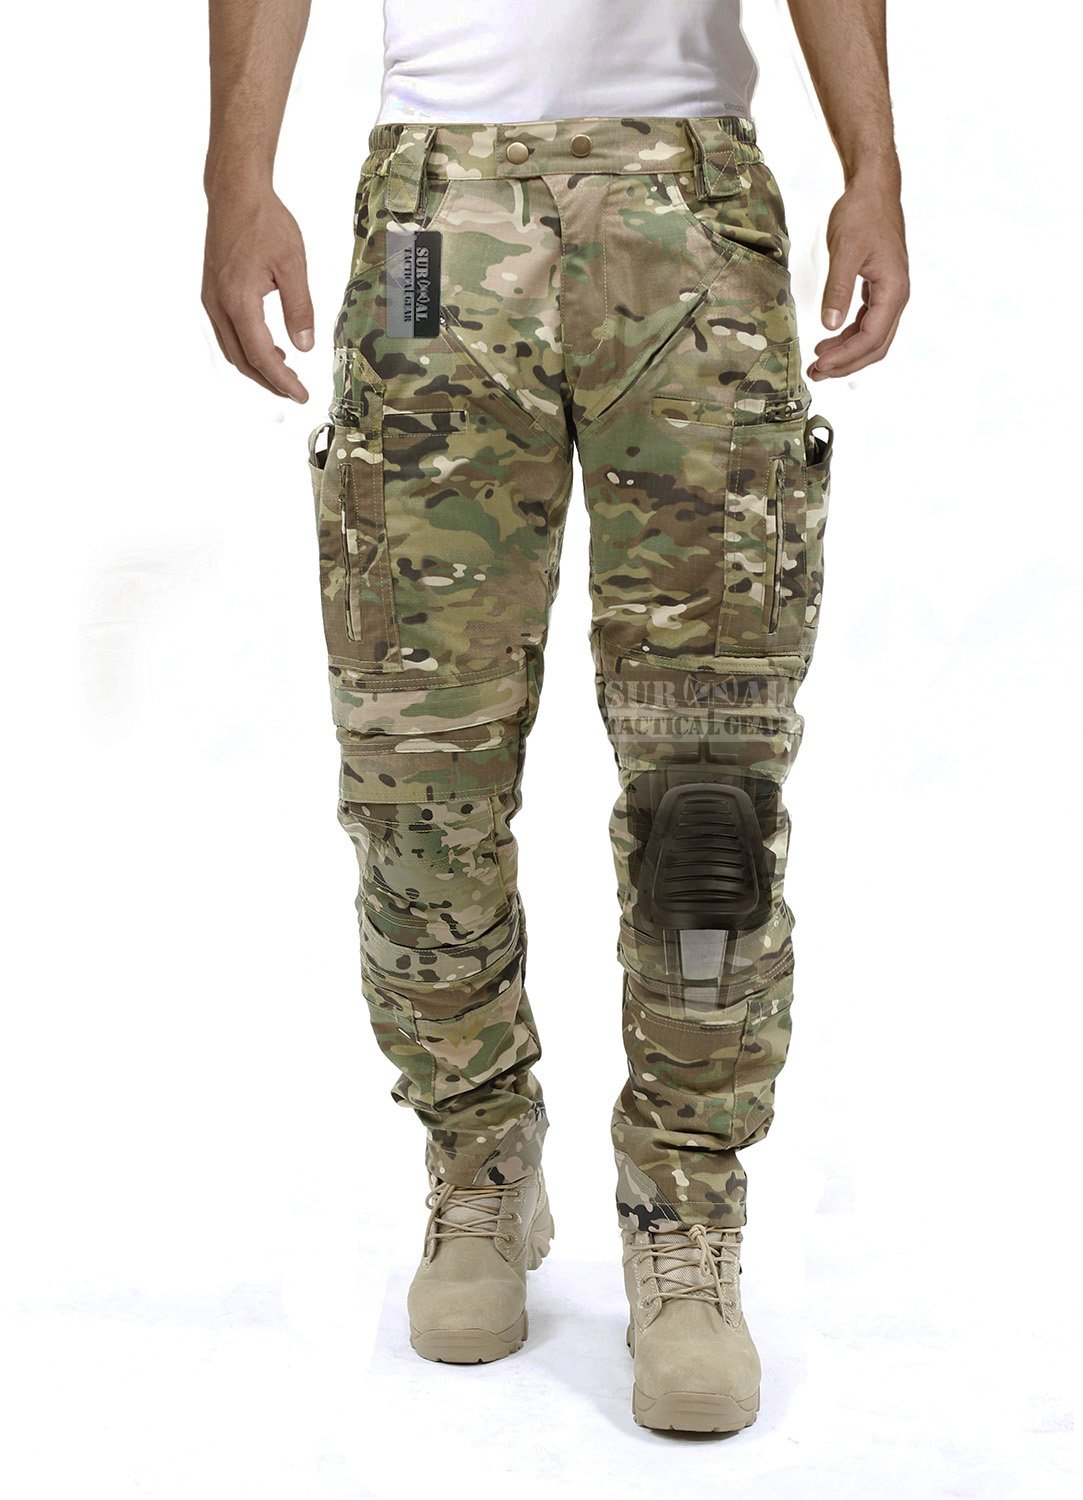 Survival Tactical Gear Men's Airsoft Wargame Tactical Pants with Knee Protection System & Air Circulation System (Multicam Camo, S) by Survival Tactical Gear